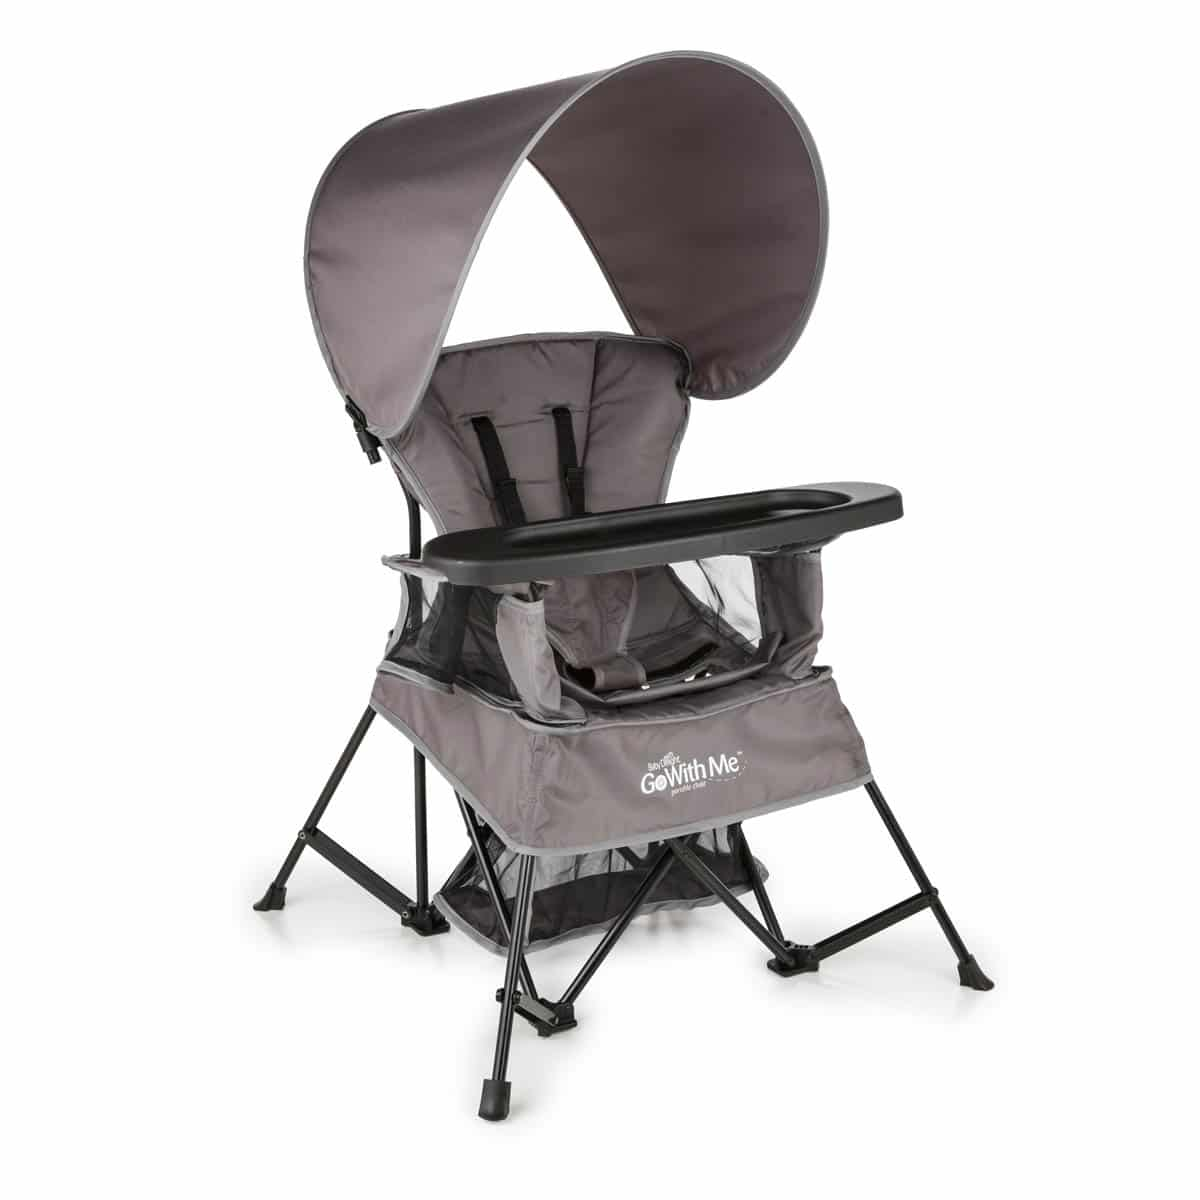 baby camping chair ergonomic video go with me gray delight inc